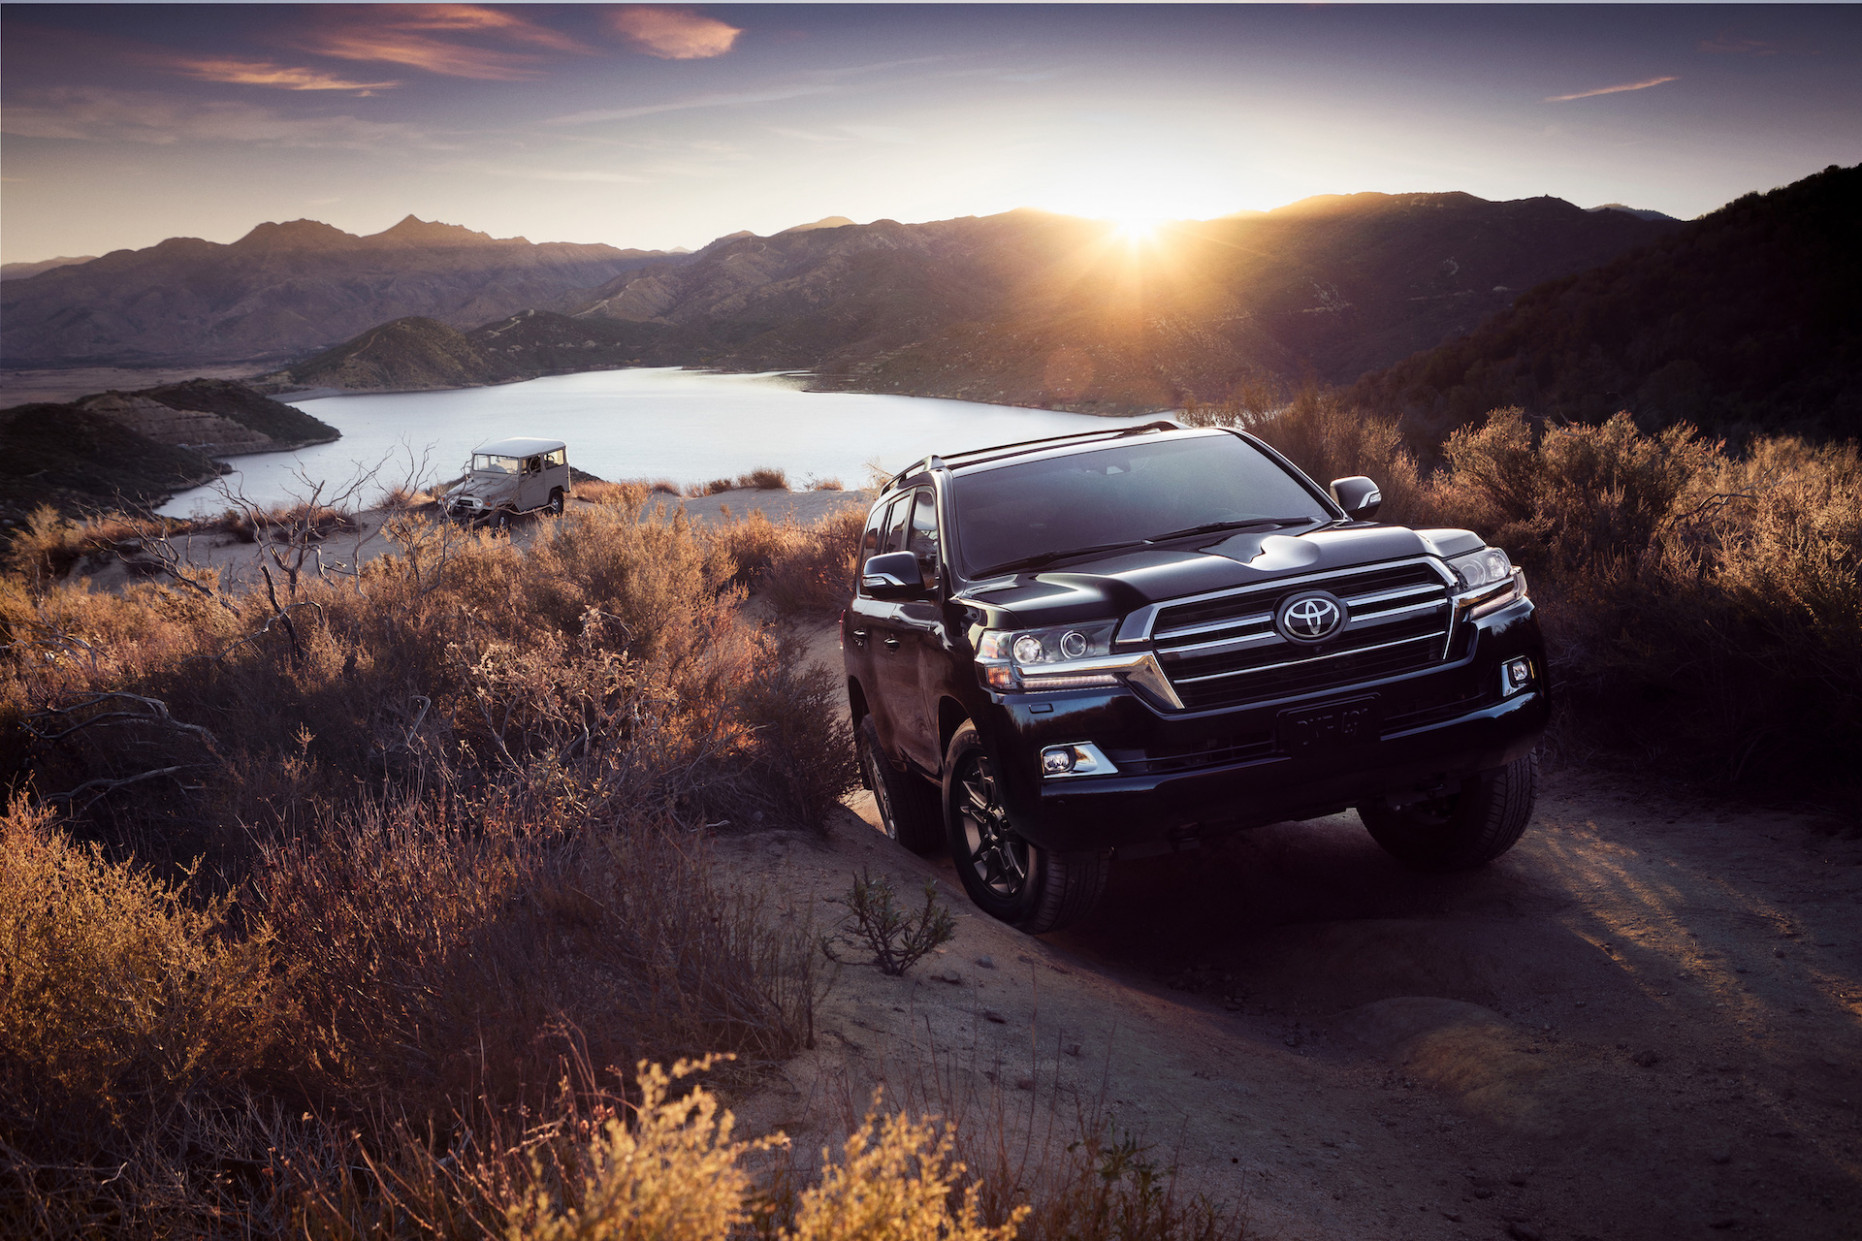 You need $7,7 to buy the 7 Toyota Land Cruiser Heritage Edition